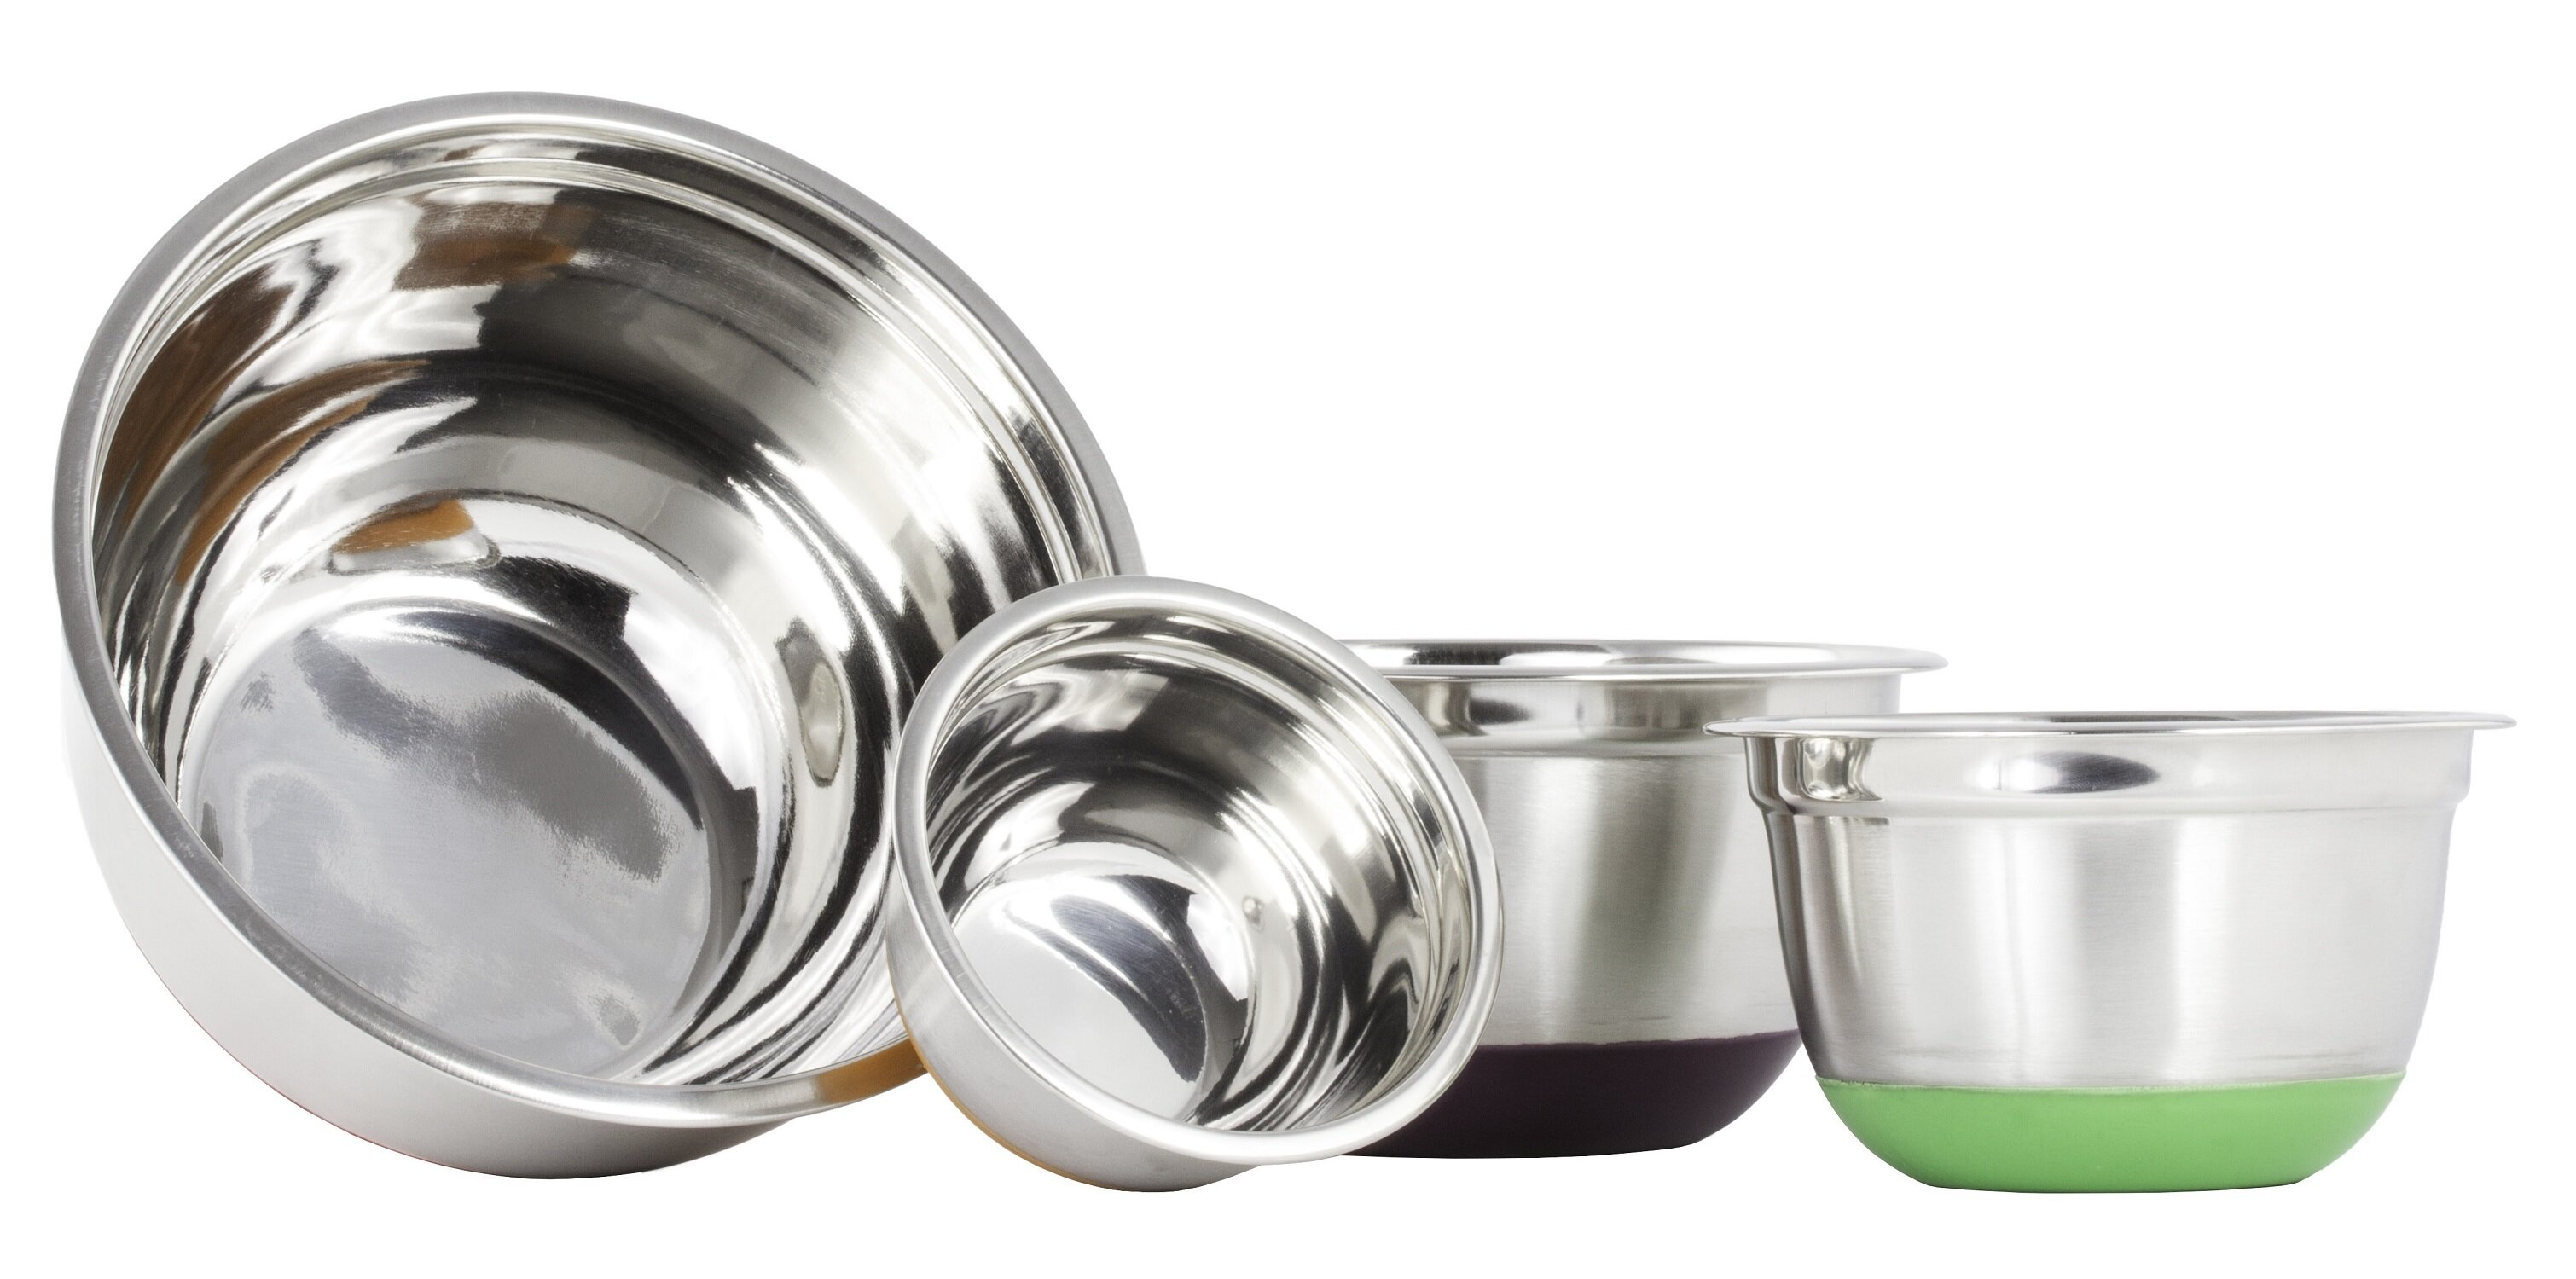 Imperial Home 4 Piece Stainless Steel Mixing Bowl Set & Reviews ...